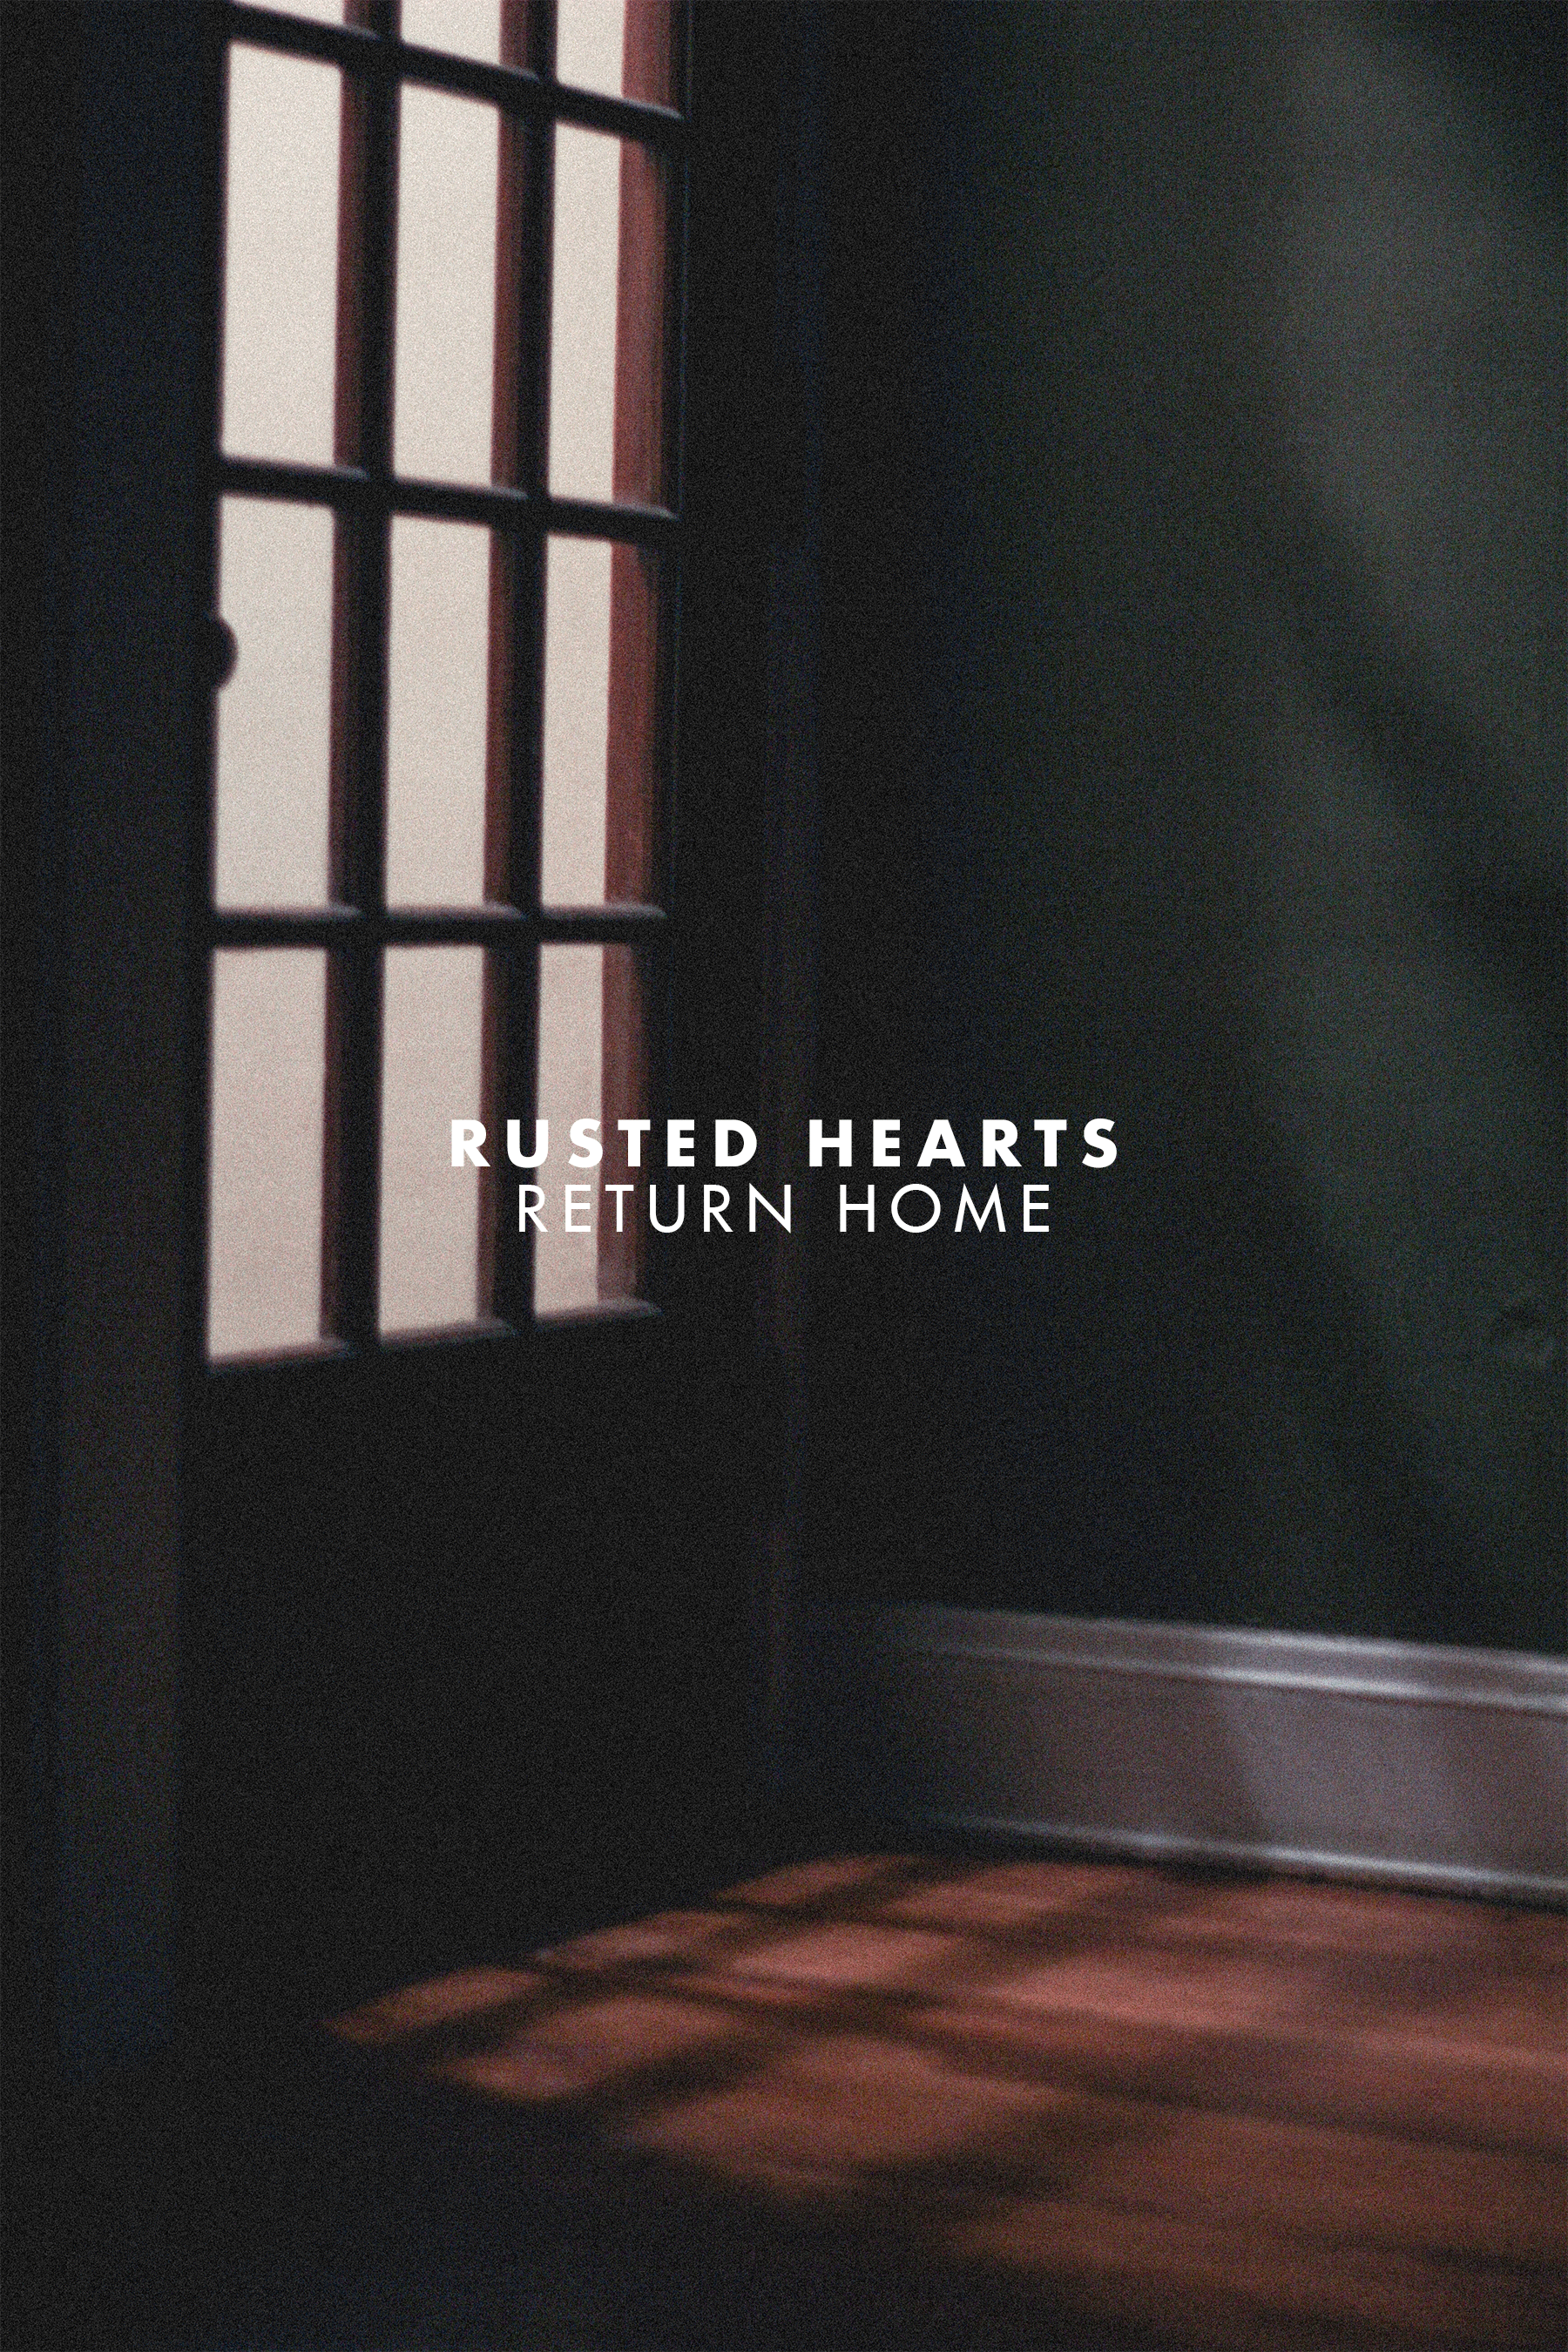 Rusted Hearts - Return Home, The Book